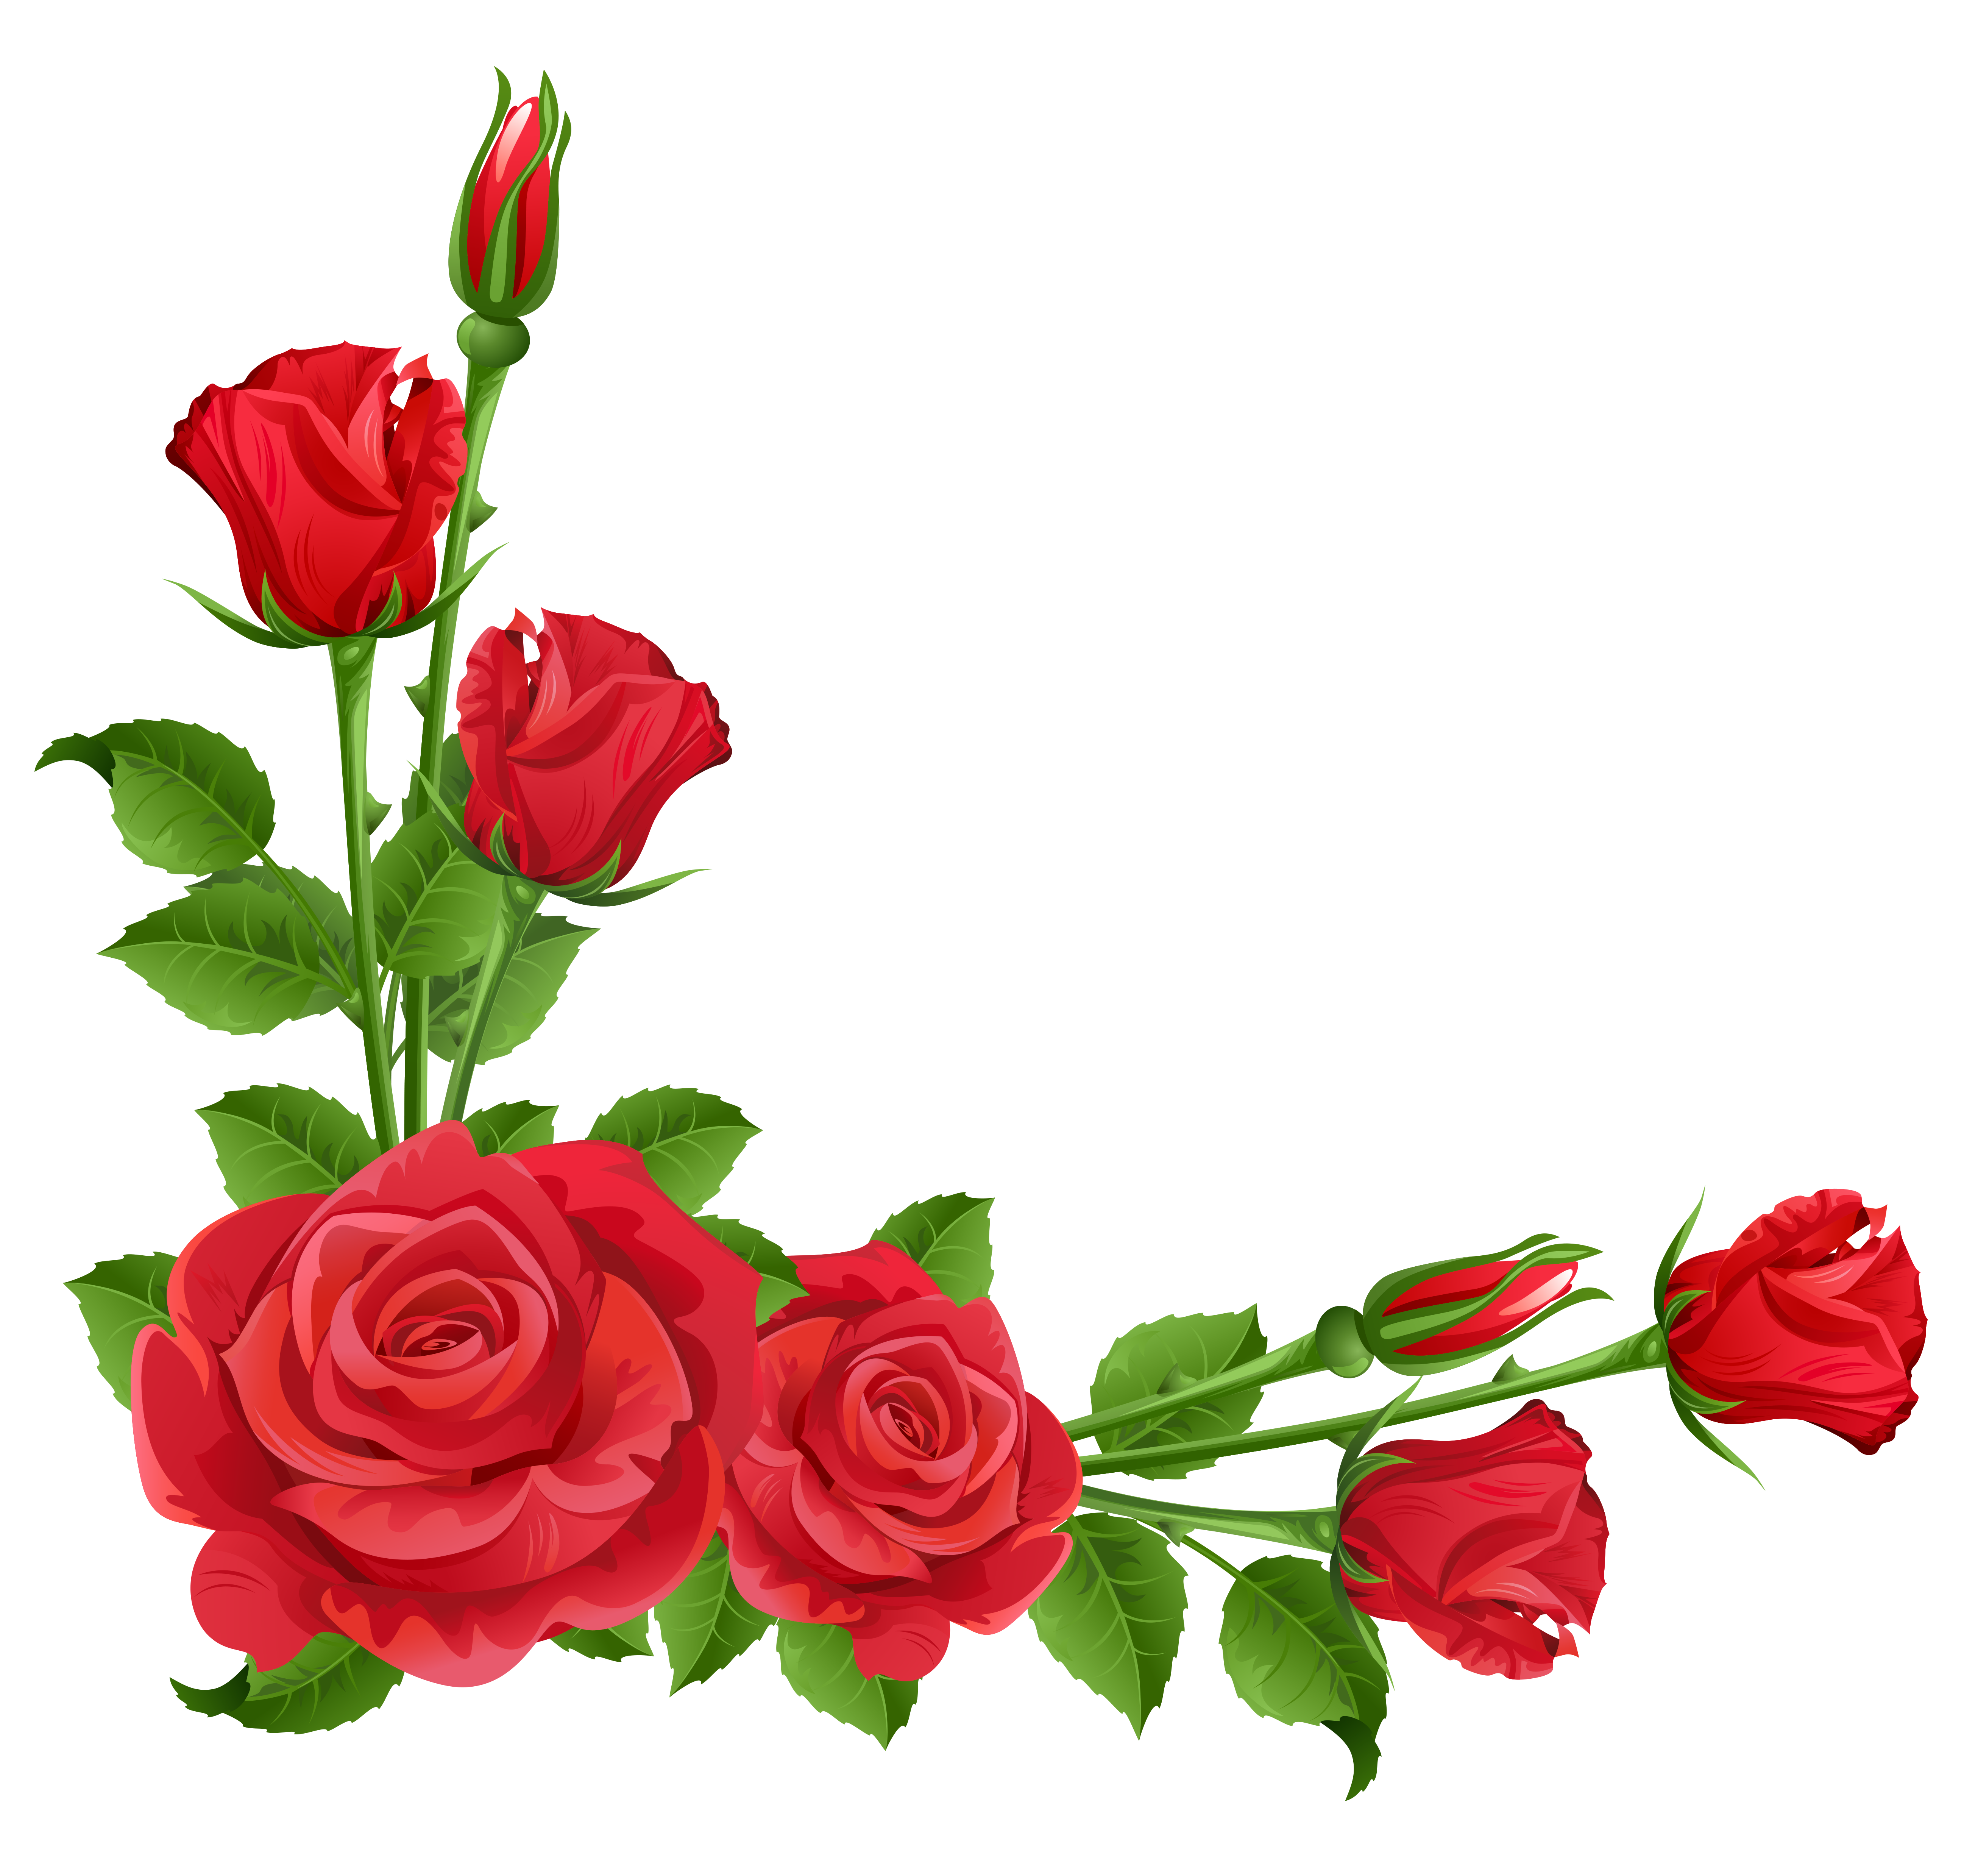 Apple rose clipart image freeuse stock Rose Clipart Transparent Background | Free download best Rose ... image freeuse stock